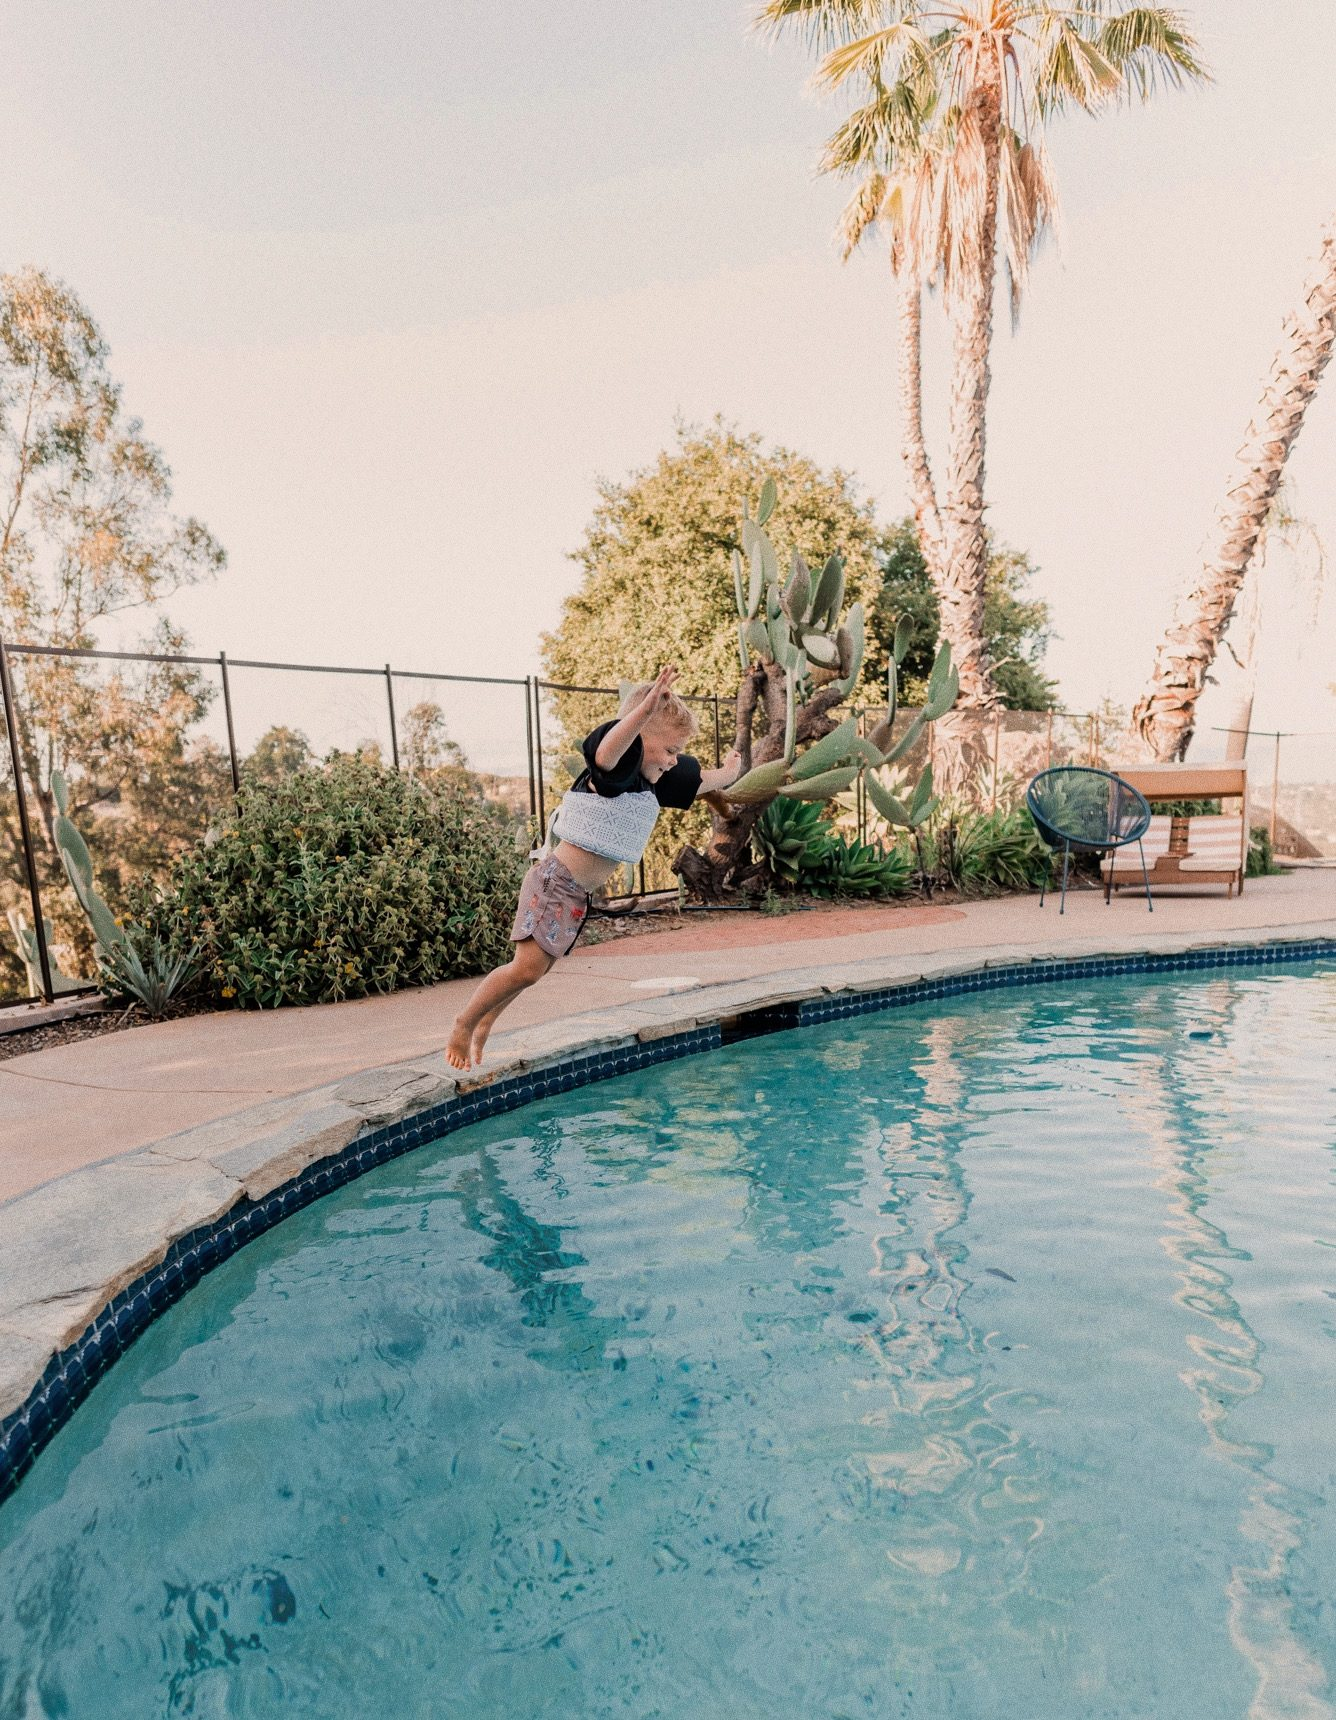 Kids Swimsuits by popular San Diego fashion blog, Navy Grace: image of a little boy wearing swimsuit and puddle jumper and jumping into a swimming pool.